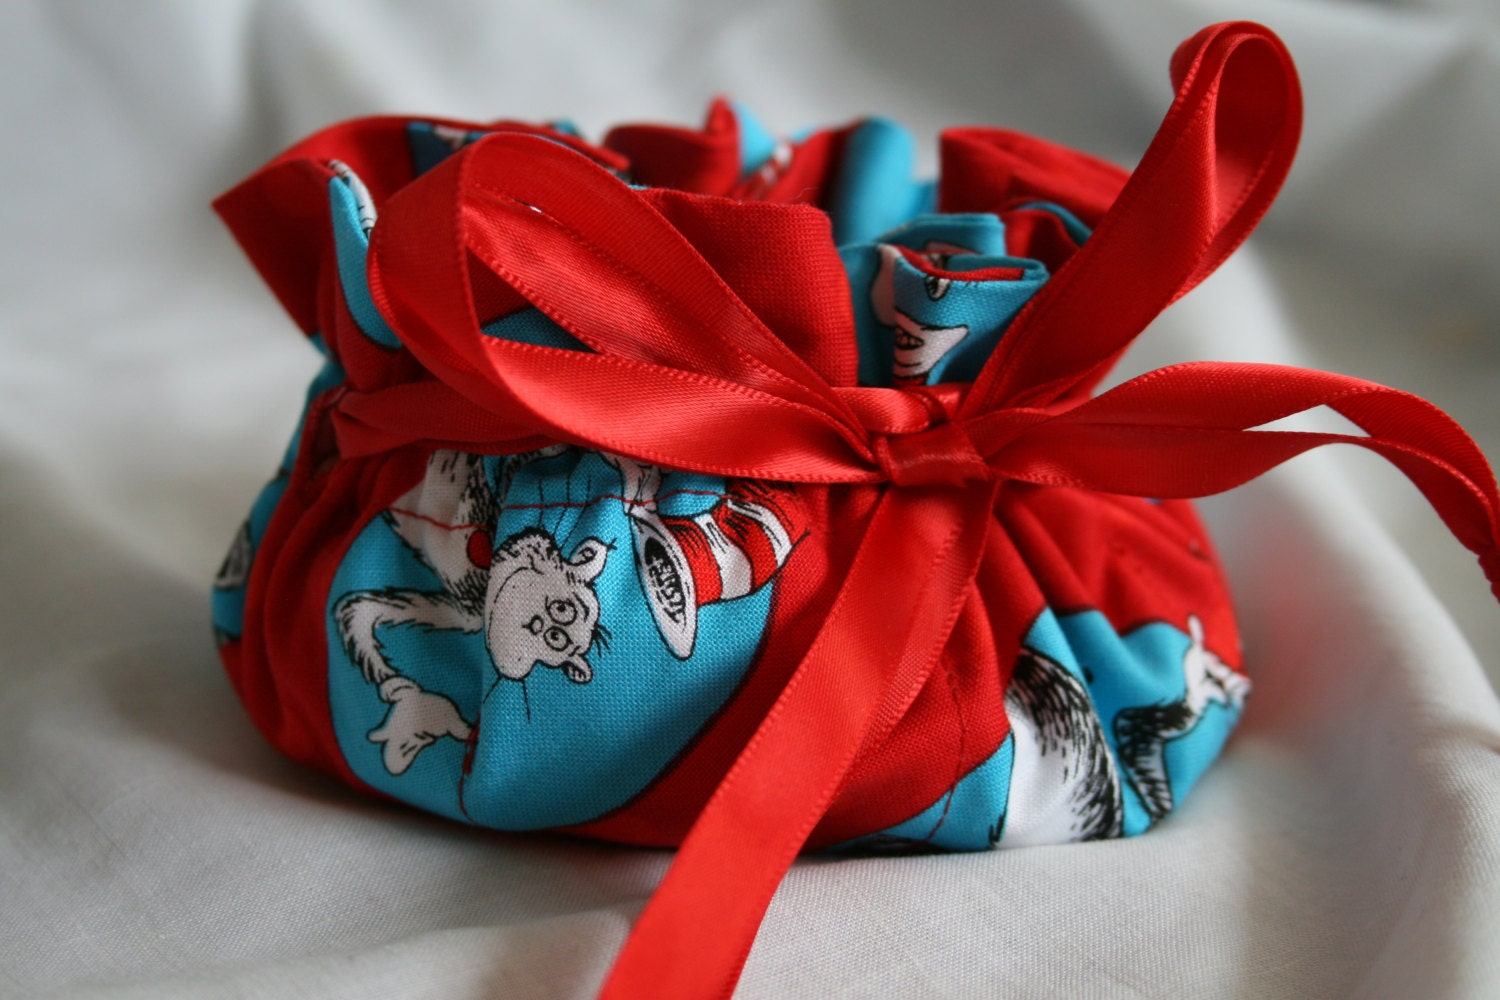 Cat in the hat jewelry travel bag travel jewelry organizer for Cat in the hat jewelry